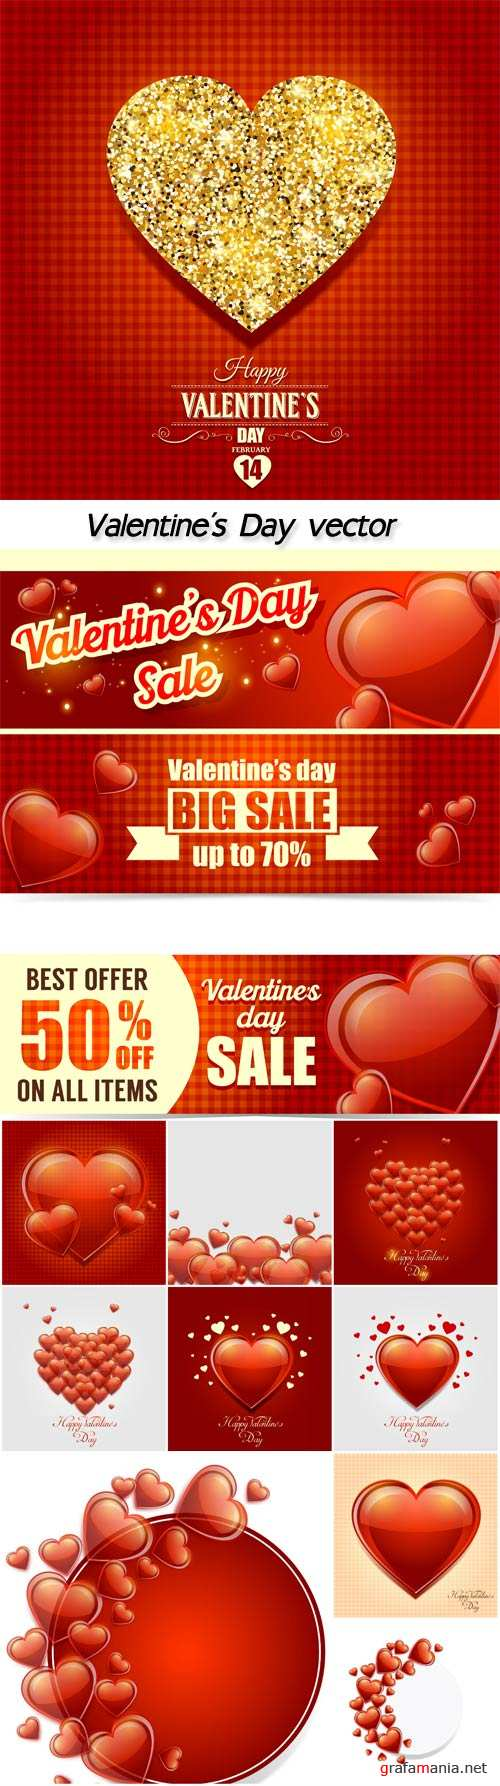 Valentine's Day, red hearts, vector backgrounds